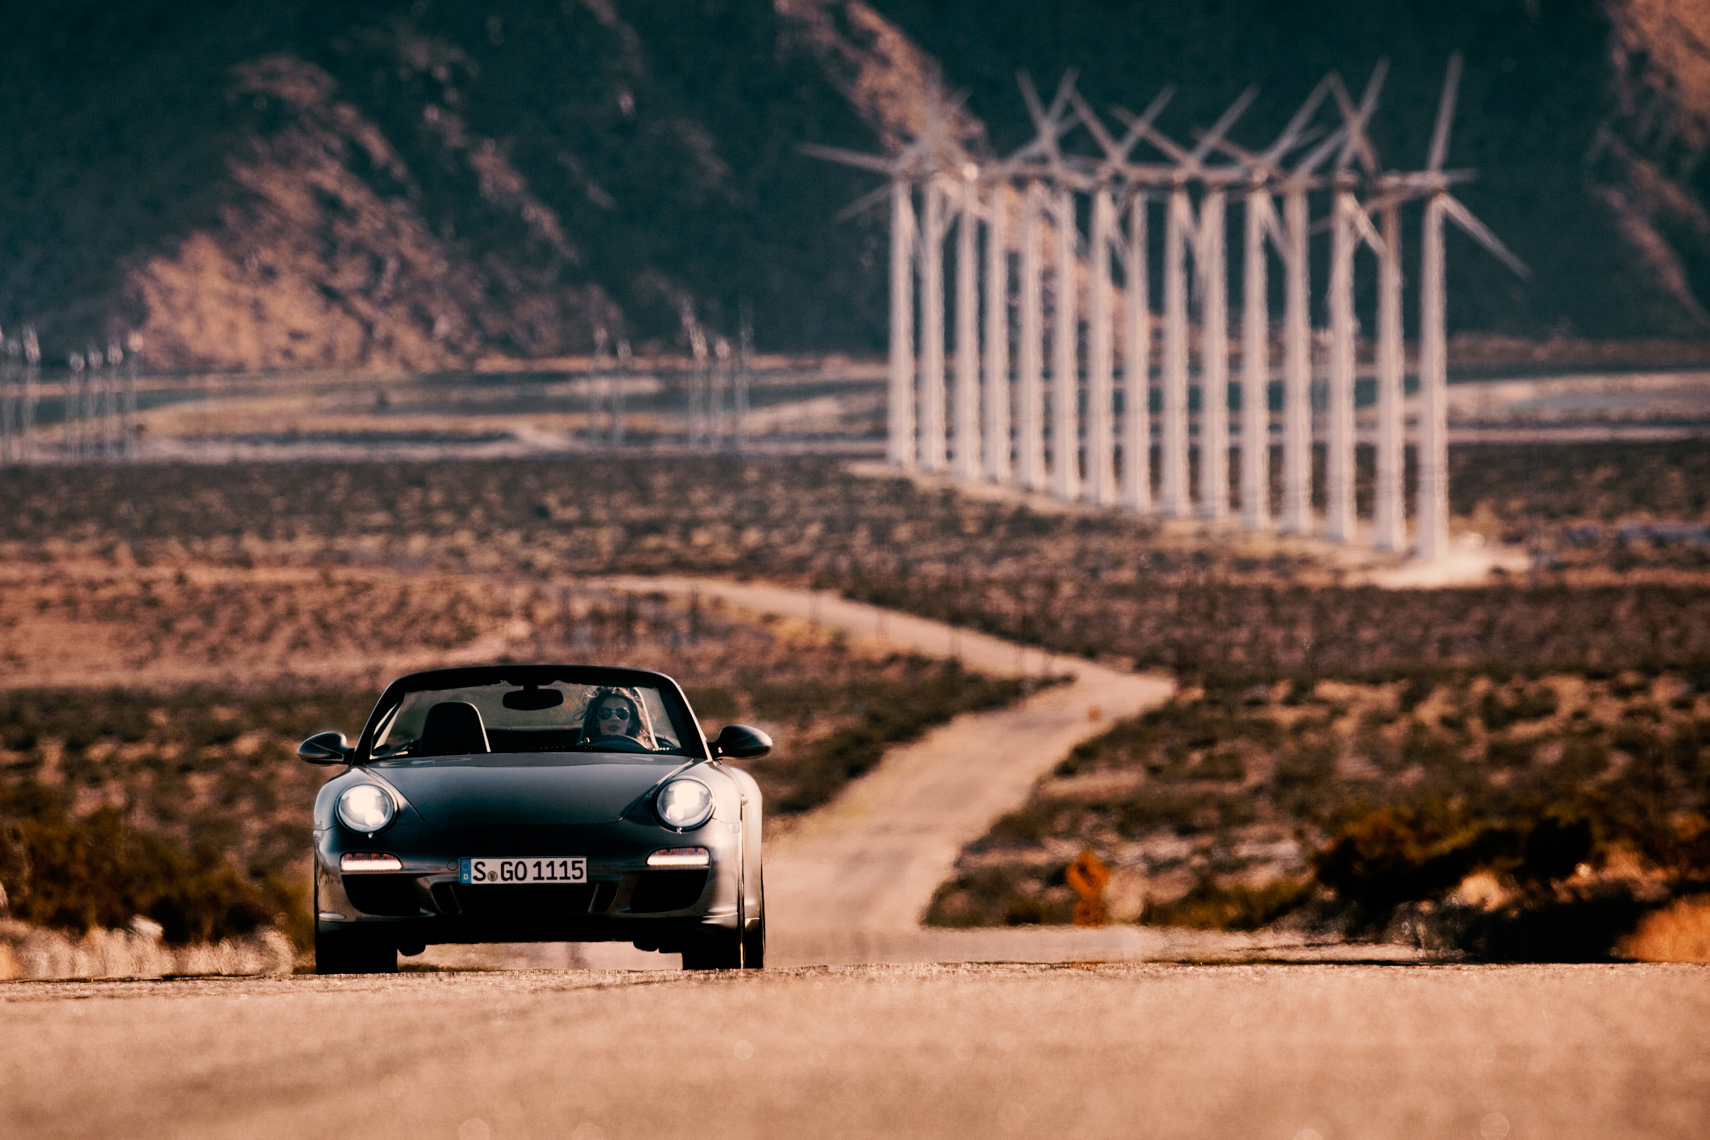 Porsche 911 desert by commercial automotive photographer Michael Grecco